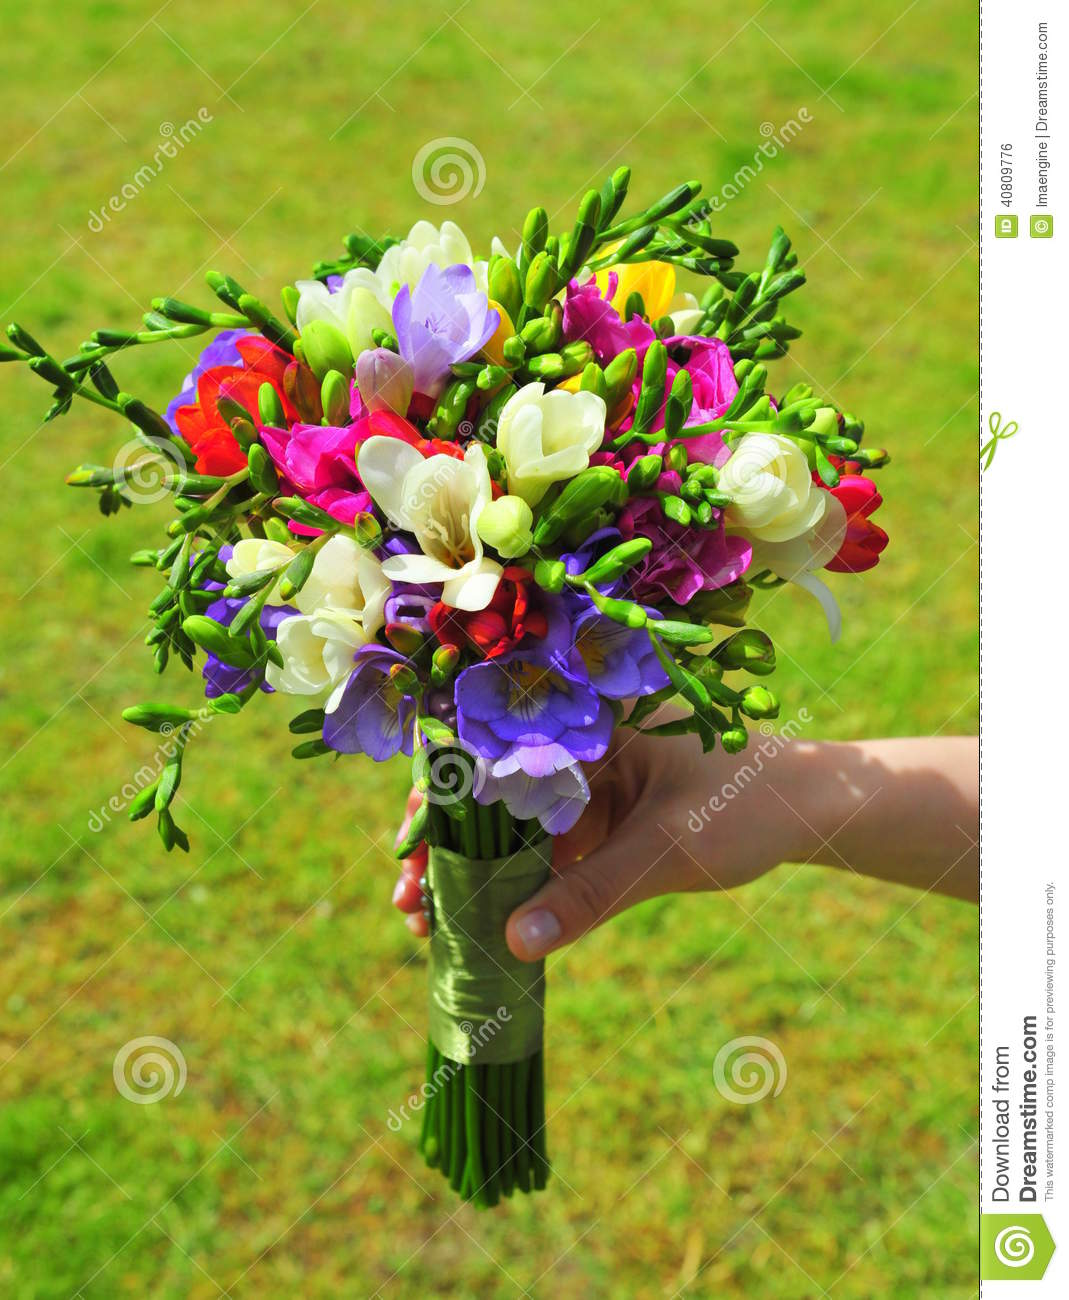 Average Cost Of Wedding Flowers 2014: Bridal Bouquet Of Freesia Flowers Stock Photo